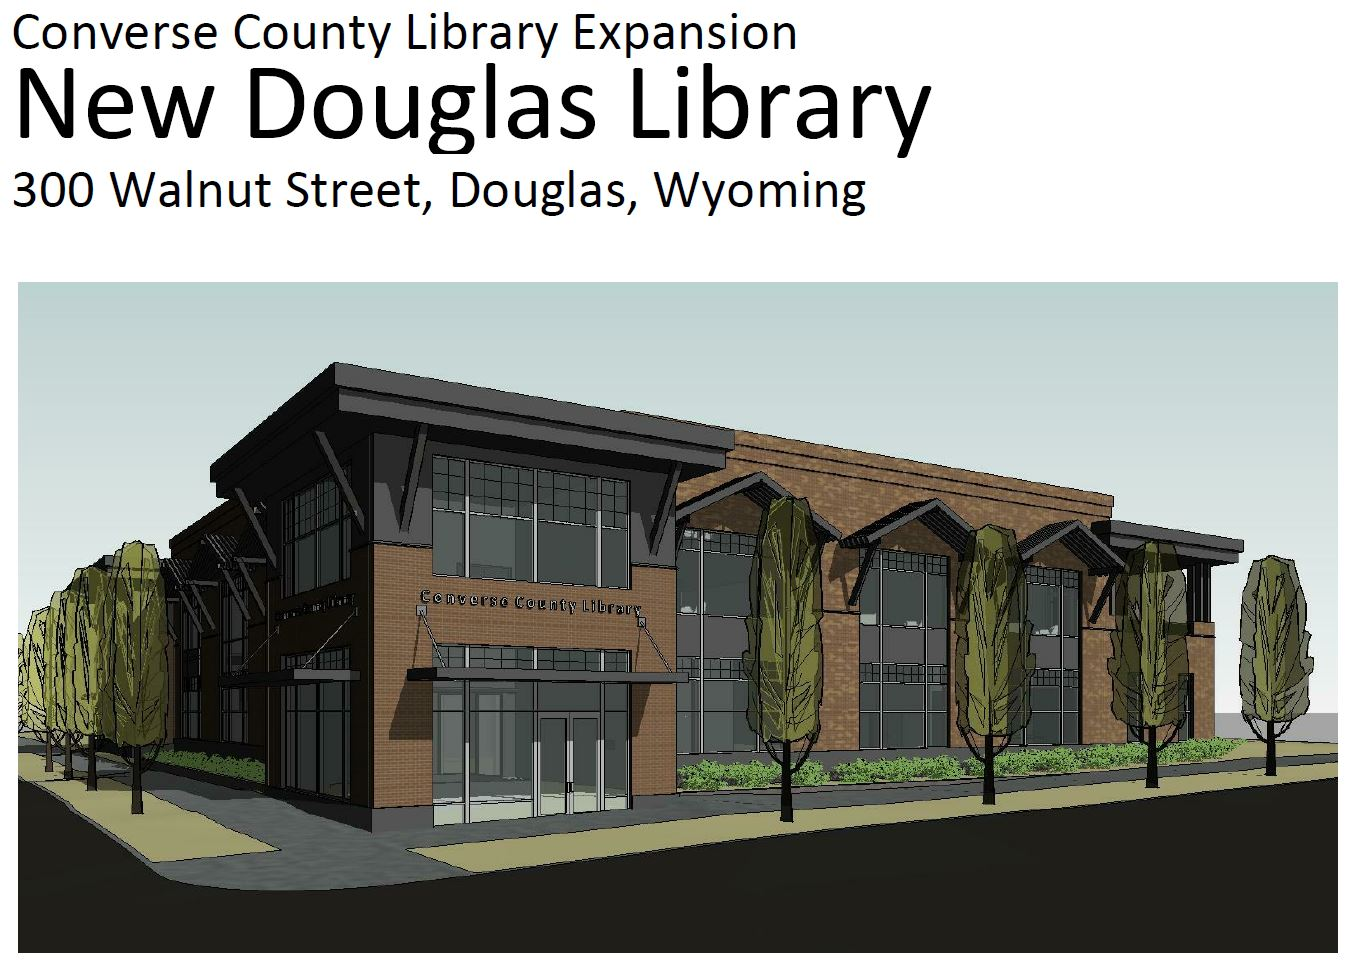 Library - Development Plan Image.JPG